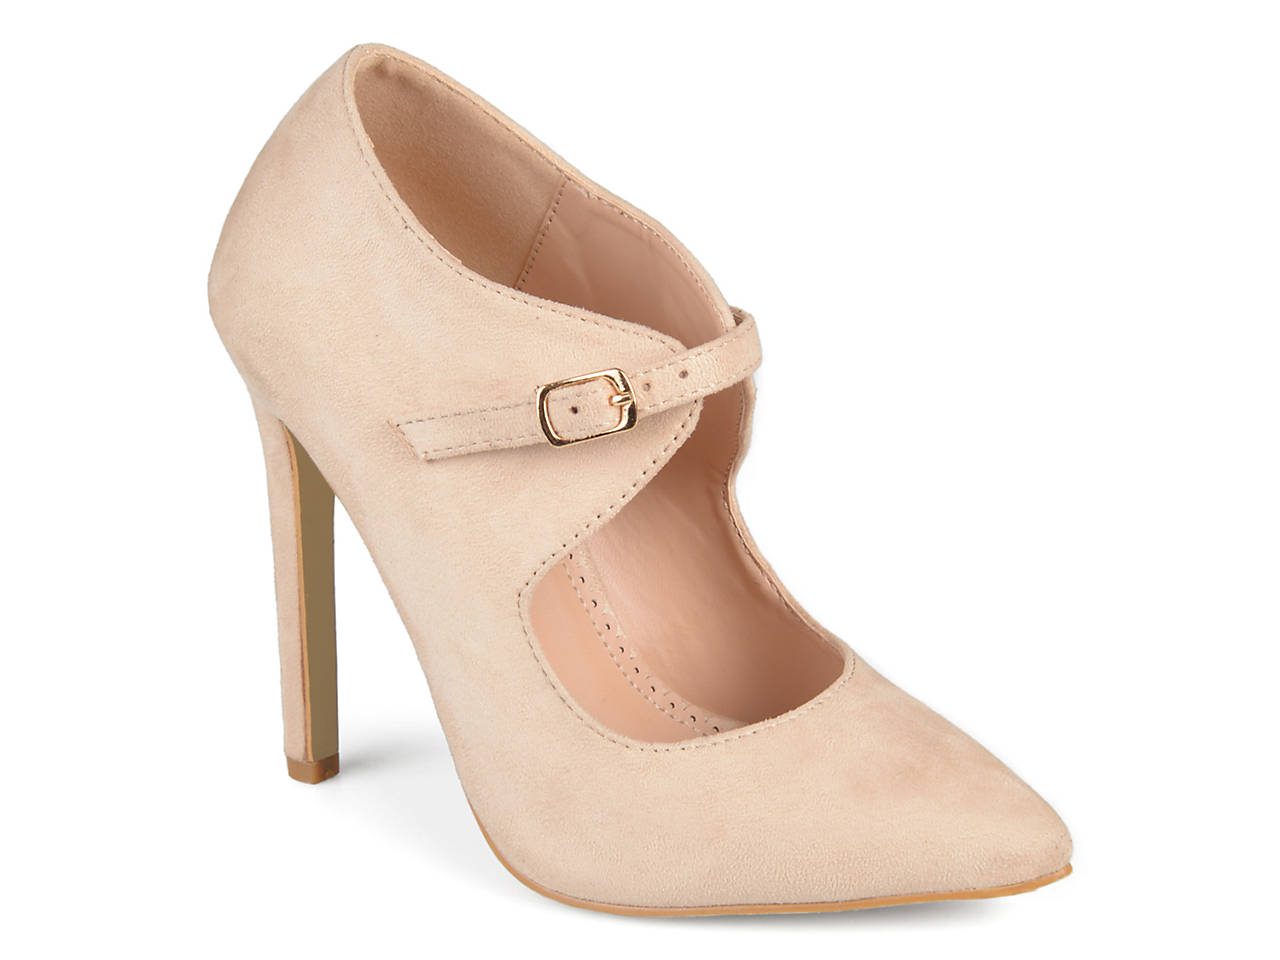 5f707f27898 Journee Collection Connly Pump Women's Shoes | DSW